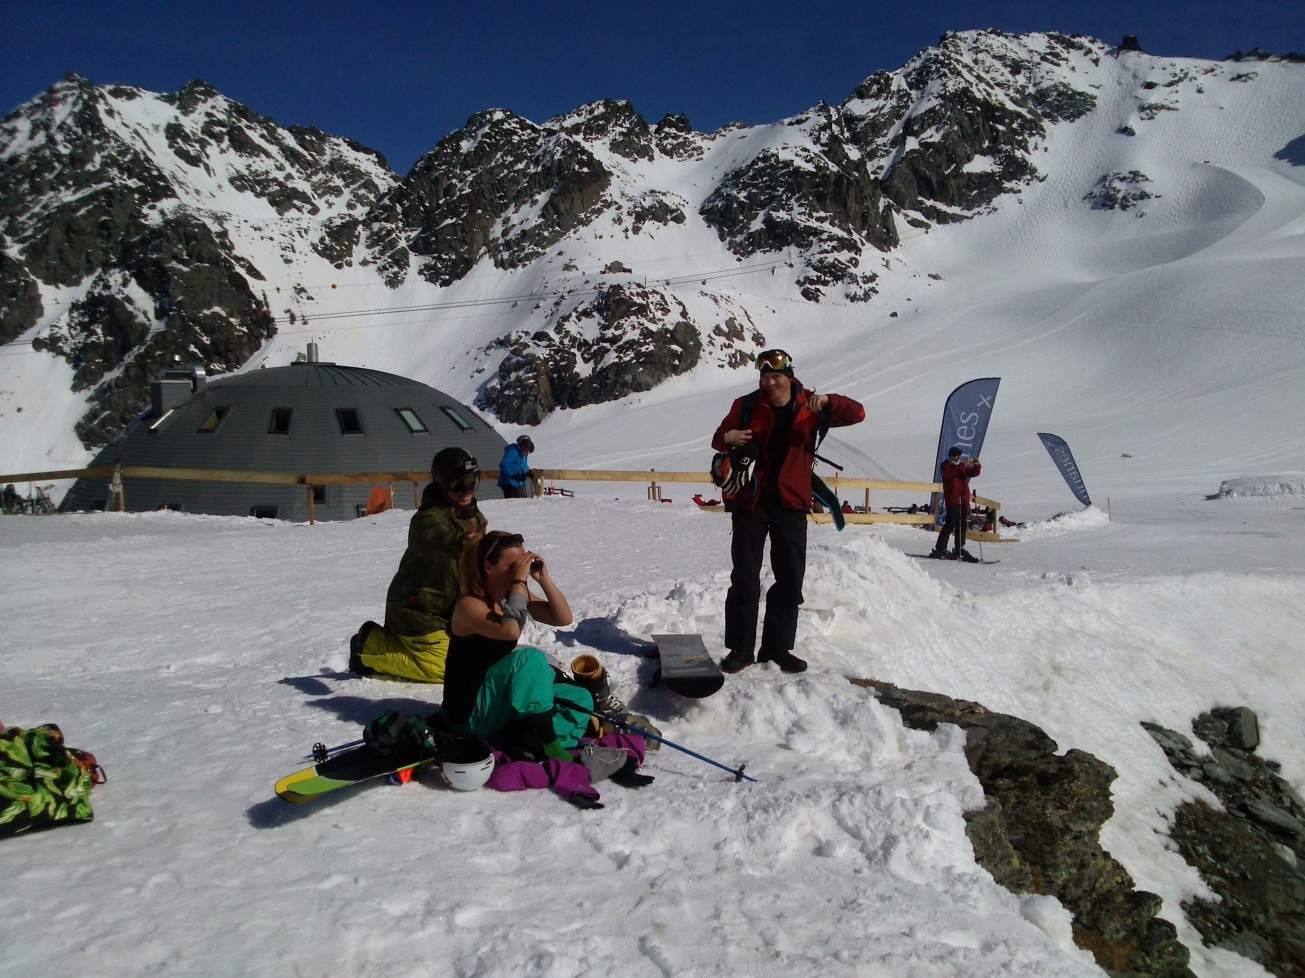 Checking out the Bec des Rosses in Verbier with Ralph Backstroem and Sascha Hamm.